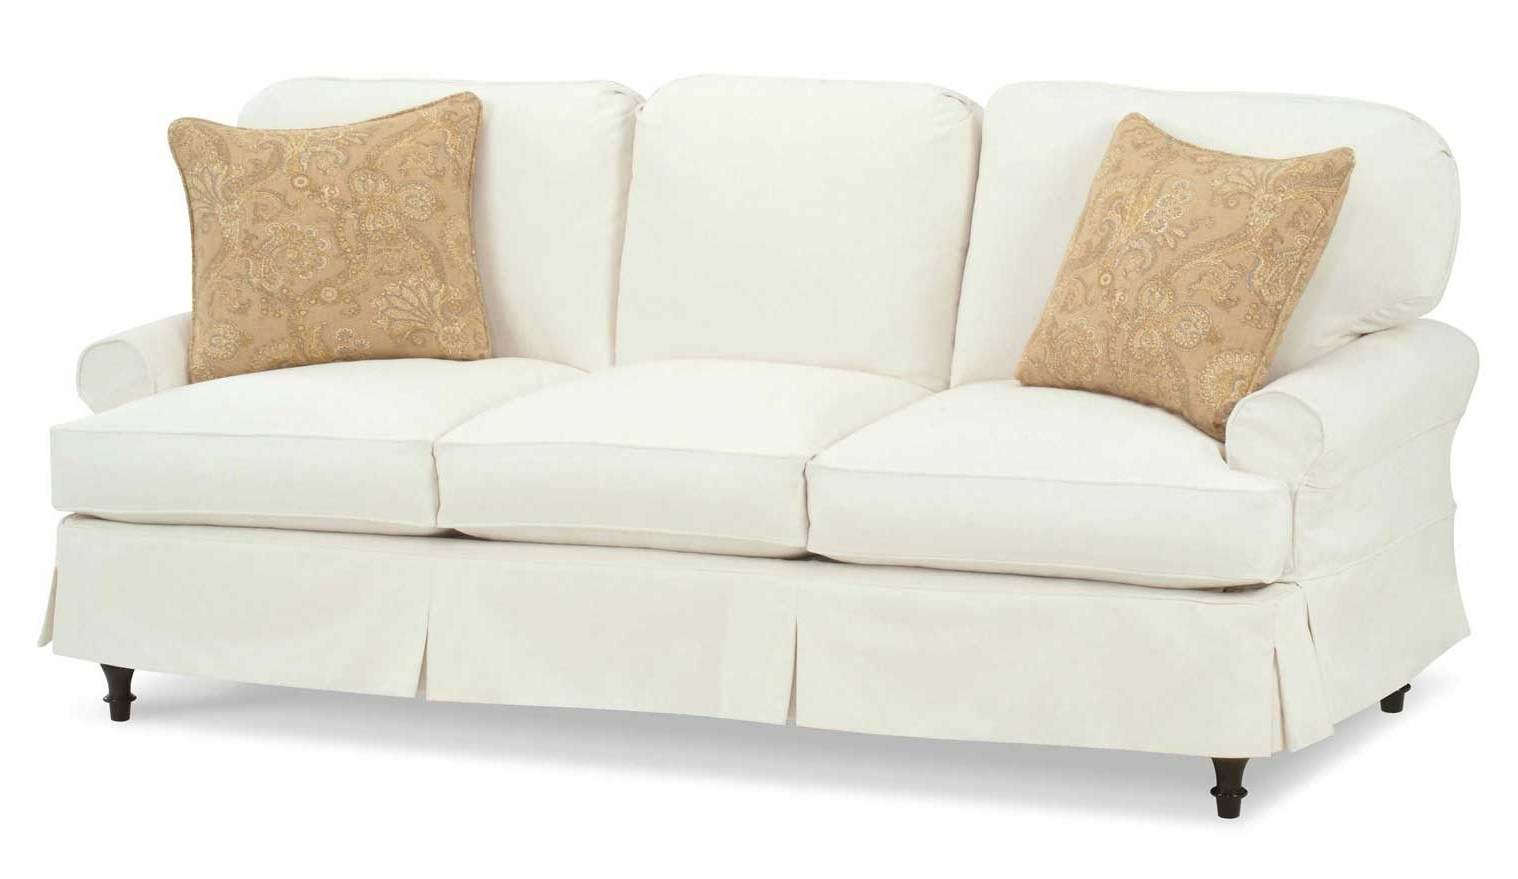 Cottage Home® Intended For Newest Country Style Sofas (View 1 of 20)